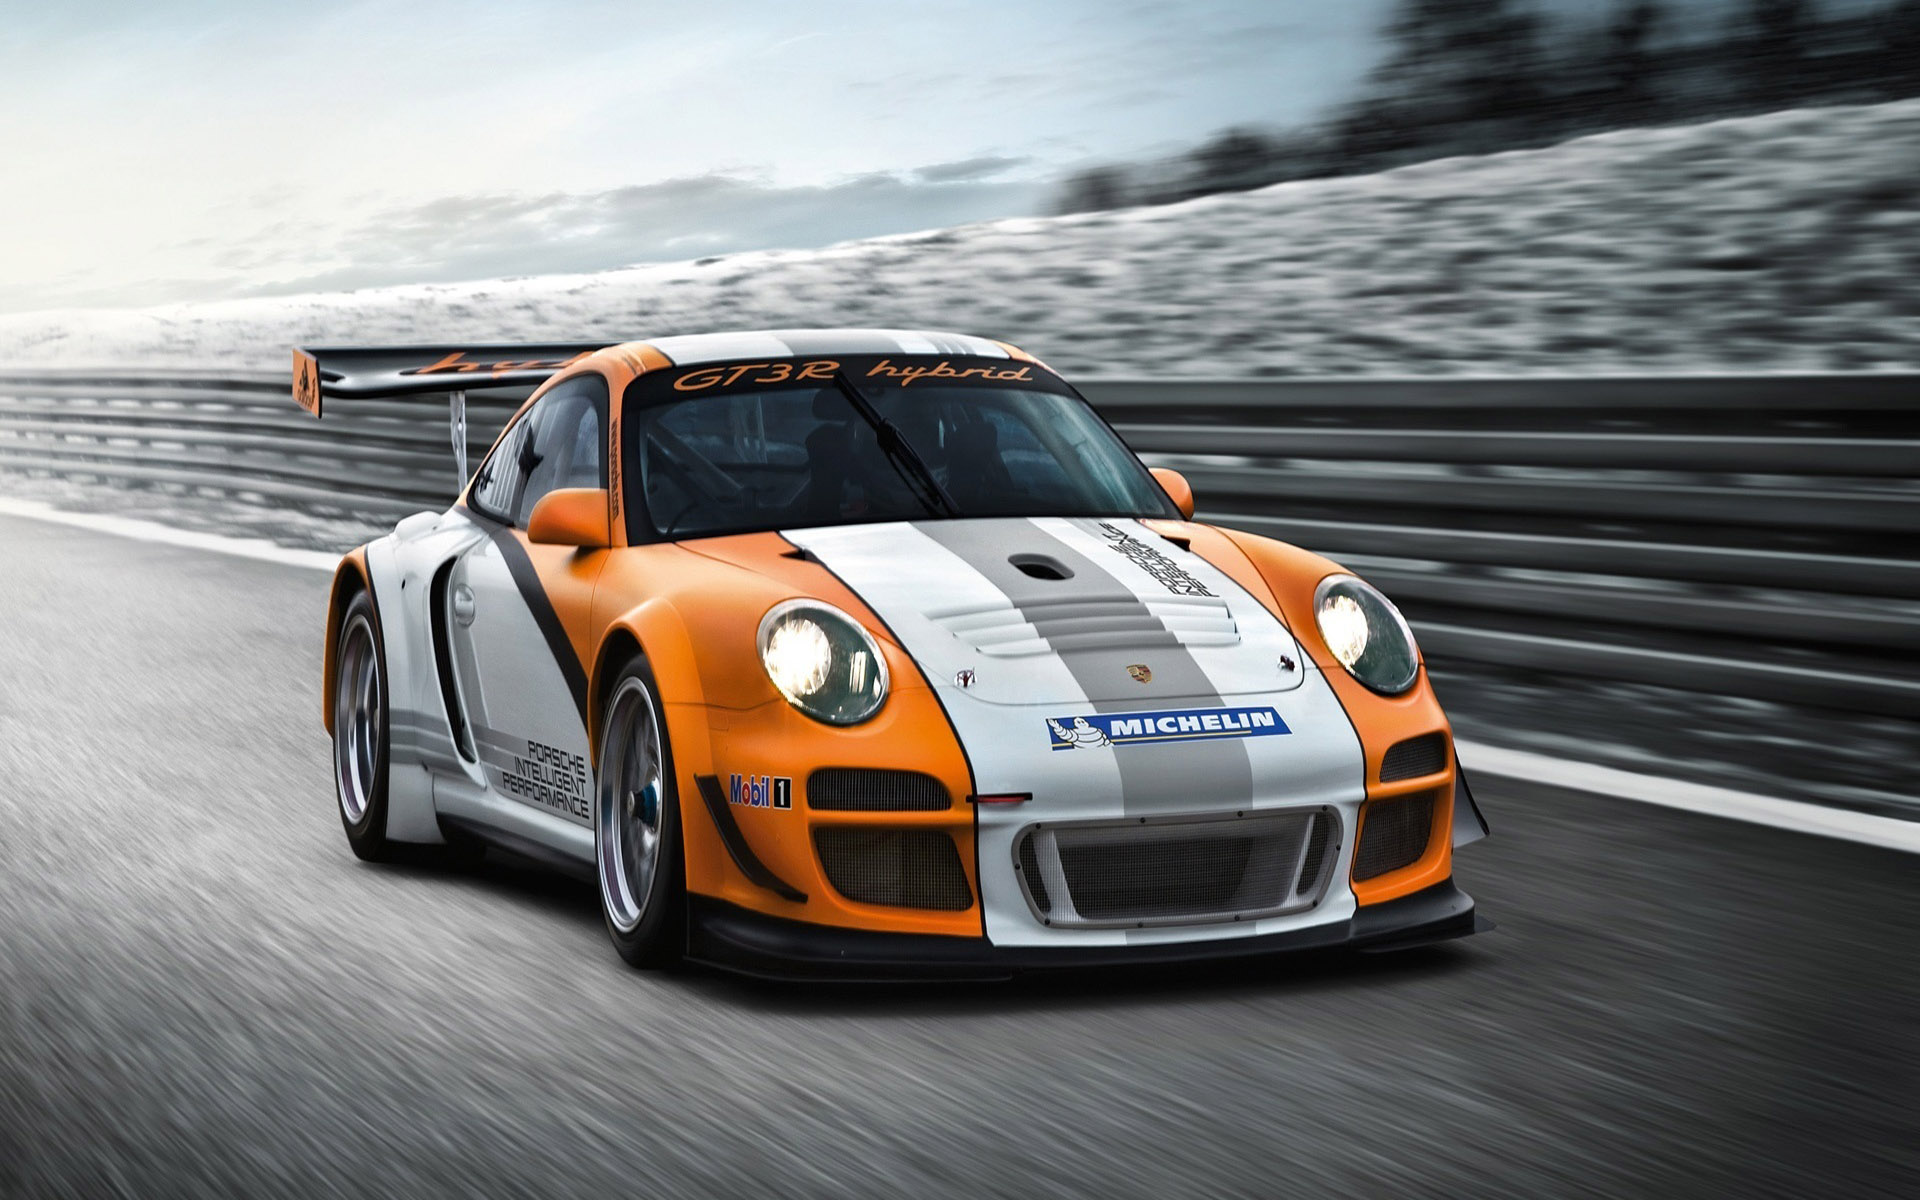 download Speedy Porsche Hybrid Hd Wallpaper